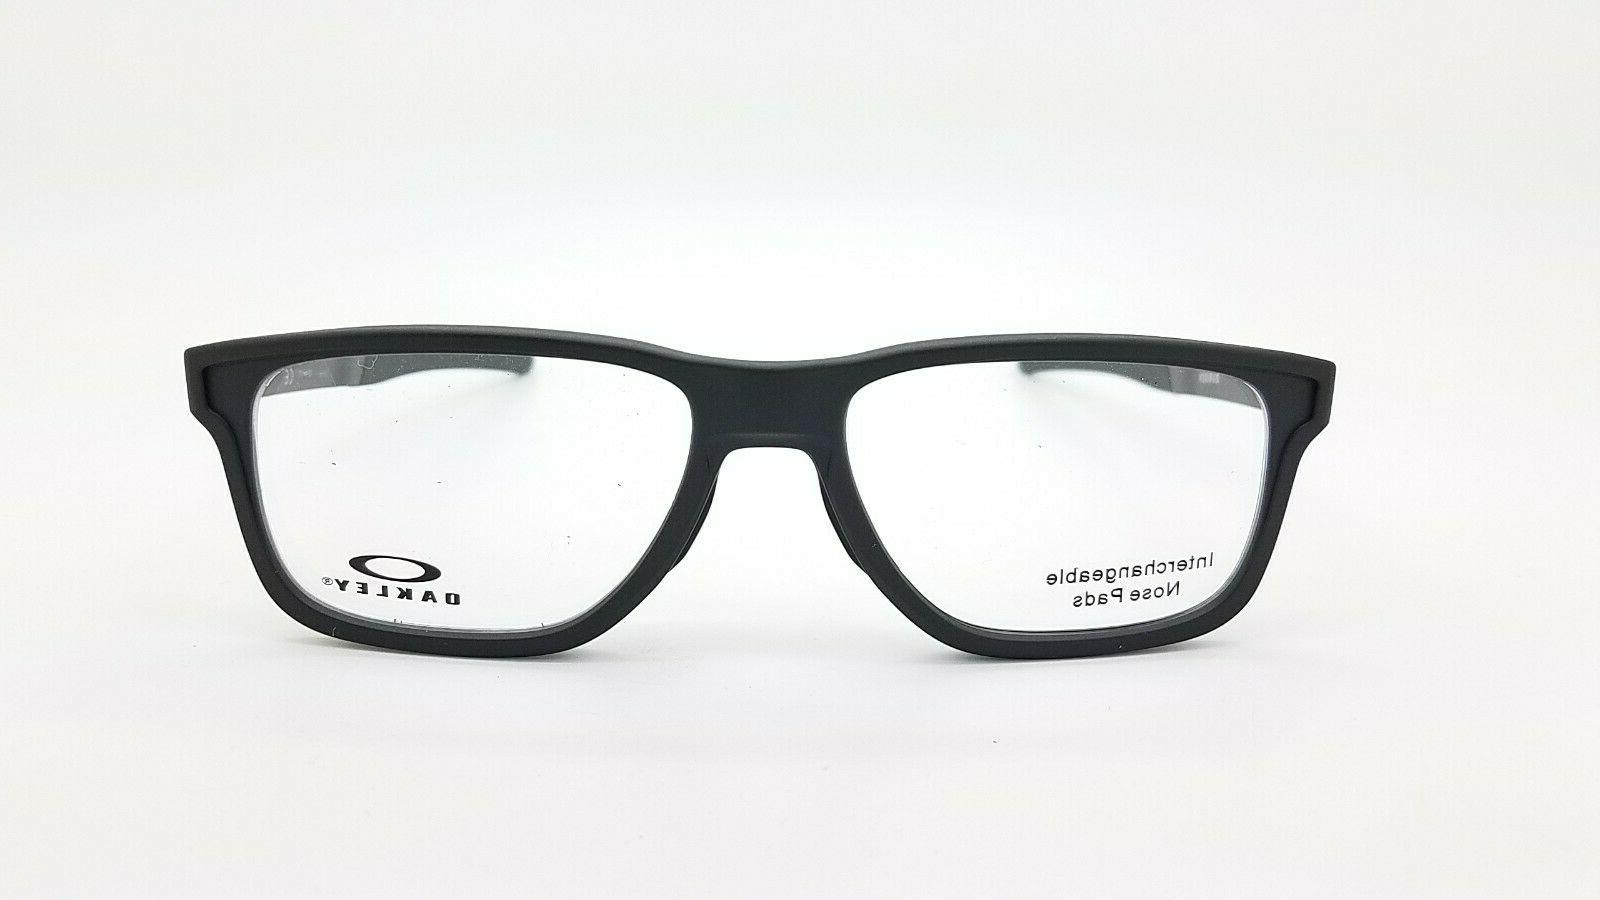 NEW Oakley Sunder Prescription Frame OX8123-0155 55mm